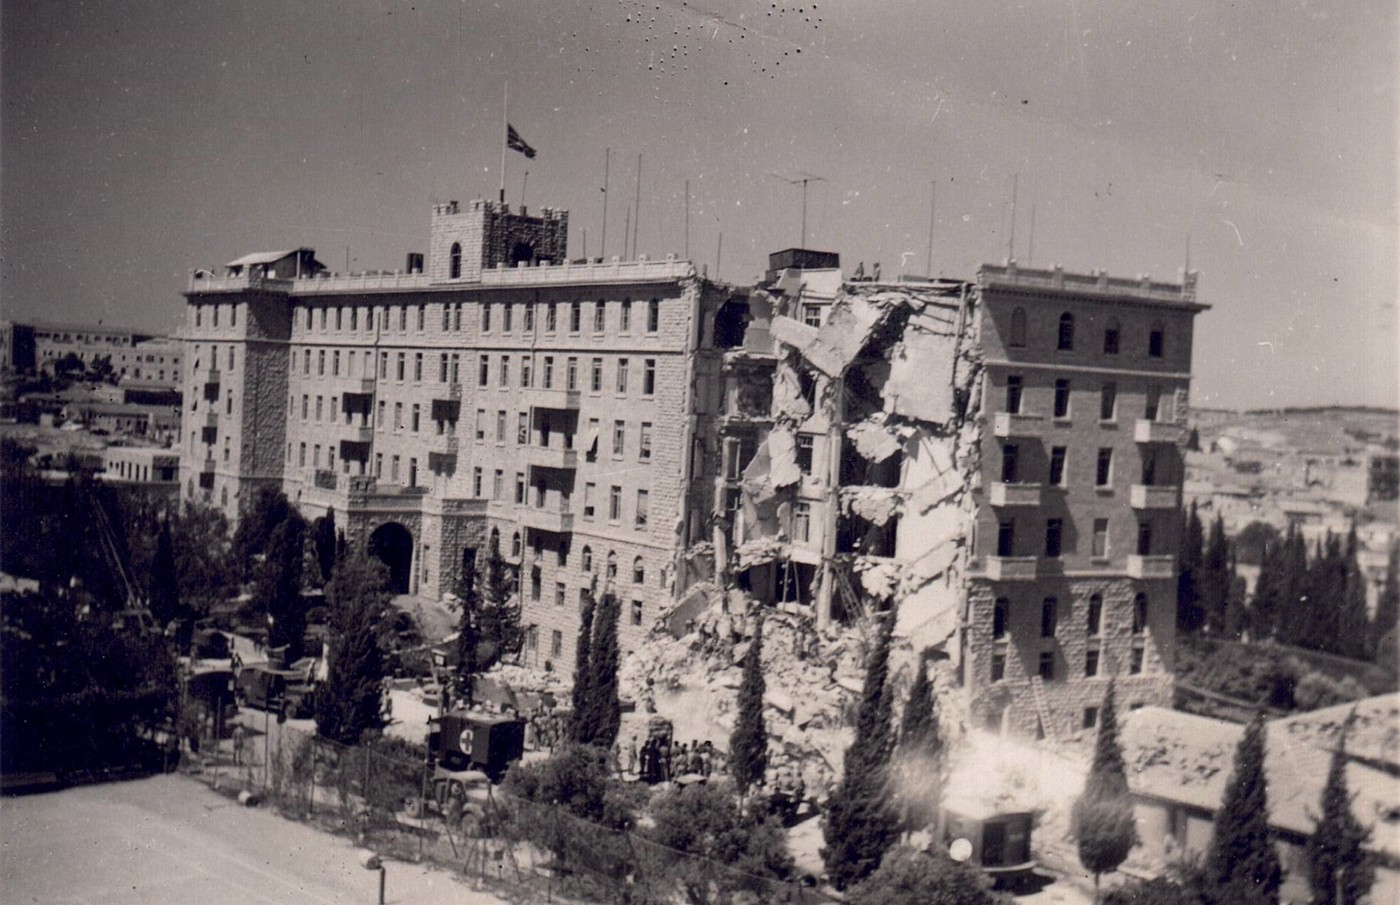 Black & White Photograph of the aftermath of the bombing of the King David Hotel, Jerusalem, by the Irgun on 22 July 1946 in which 91 people died